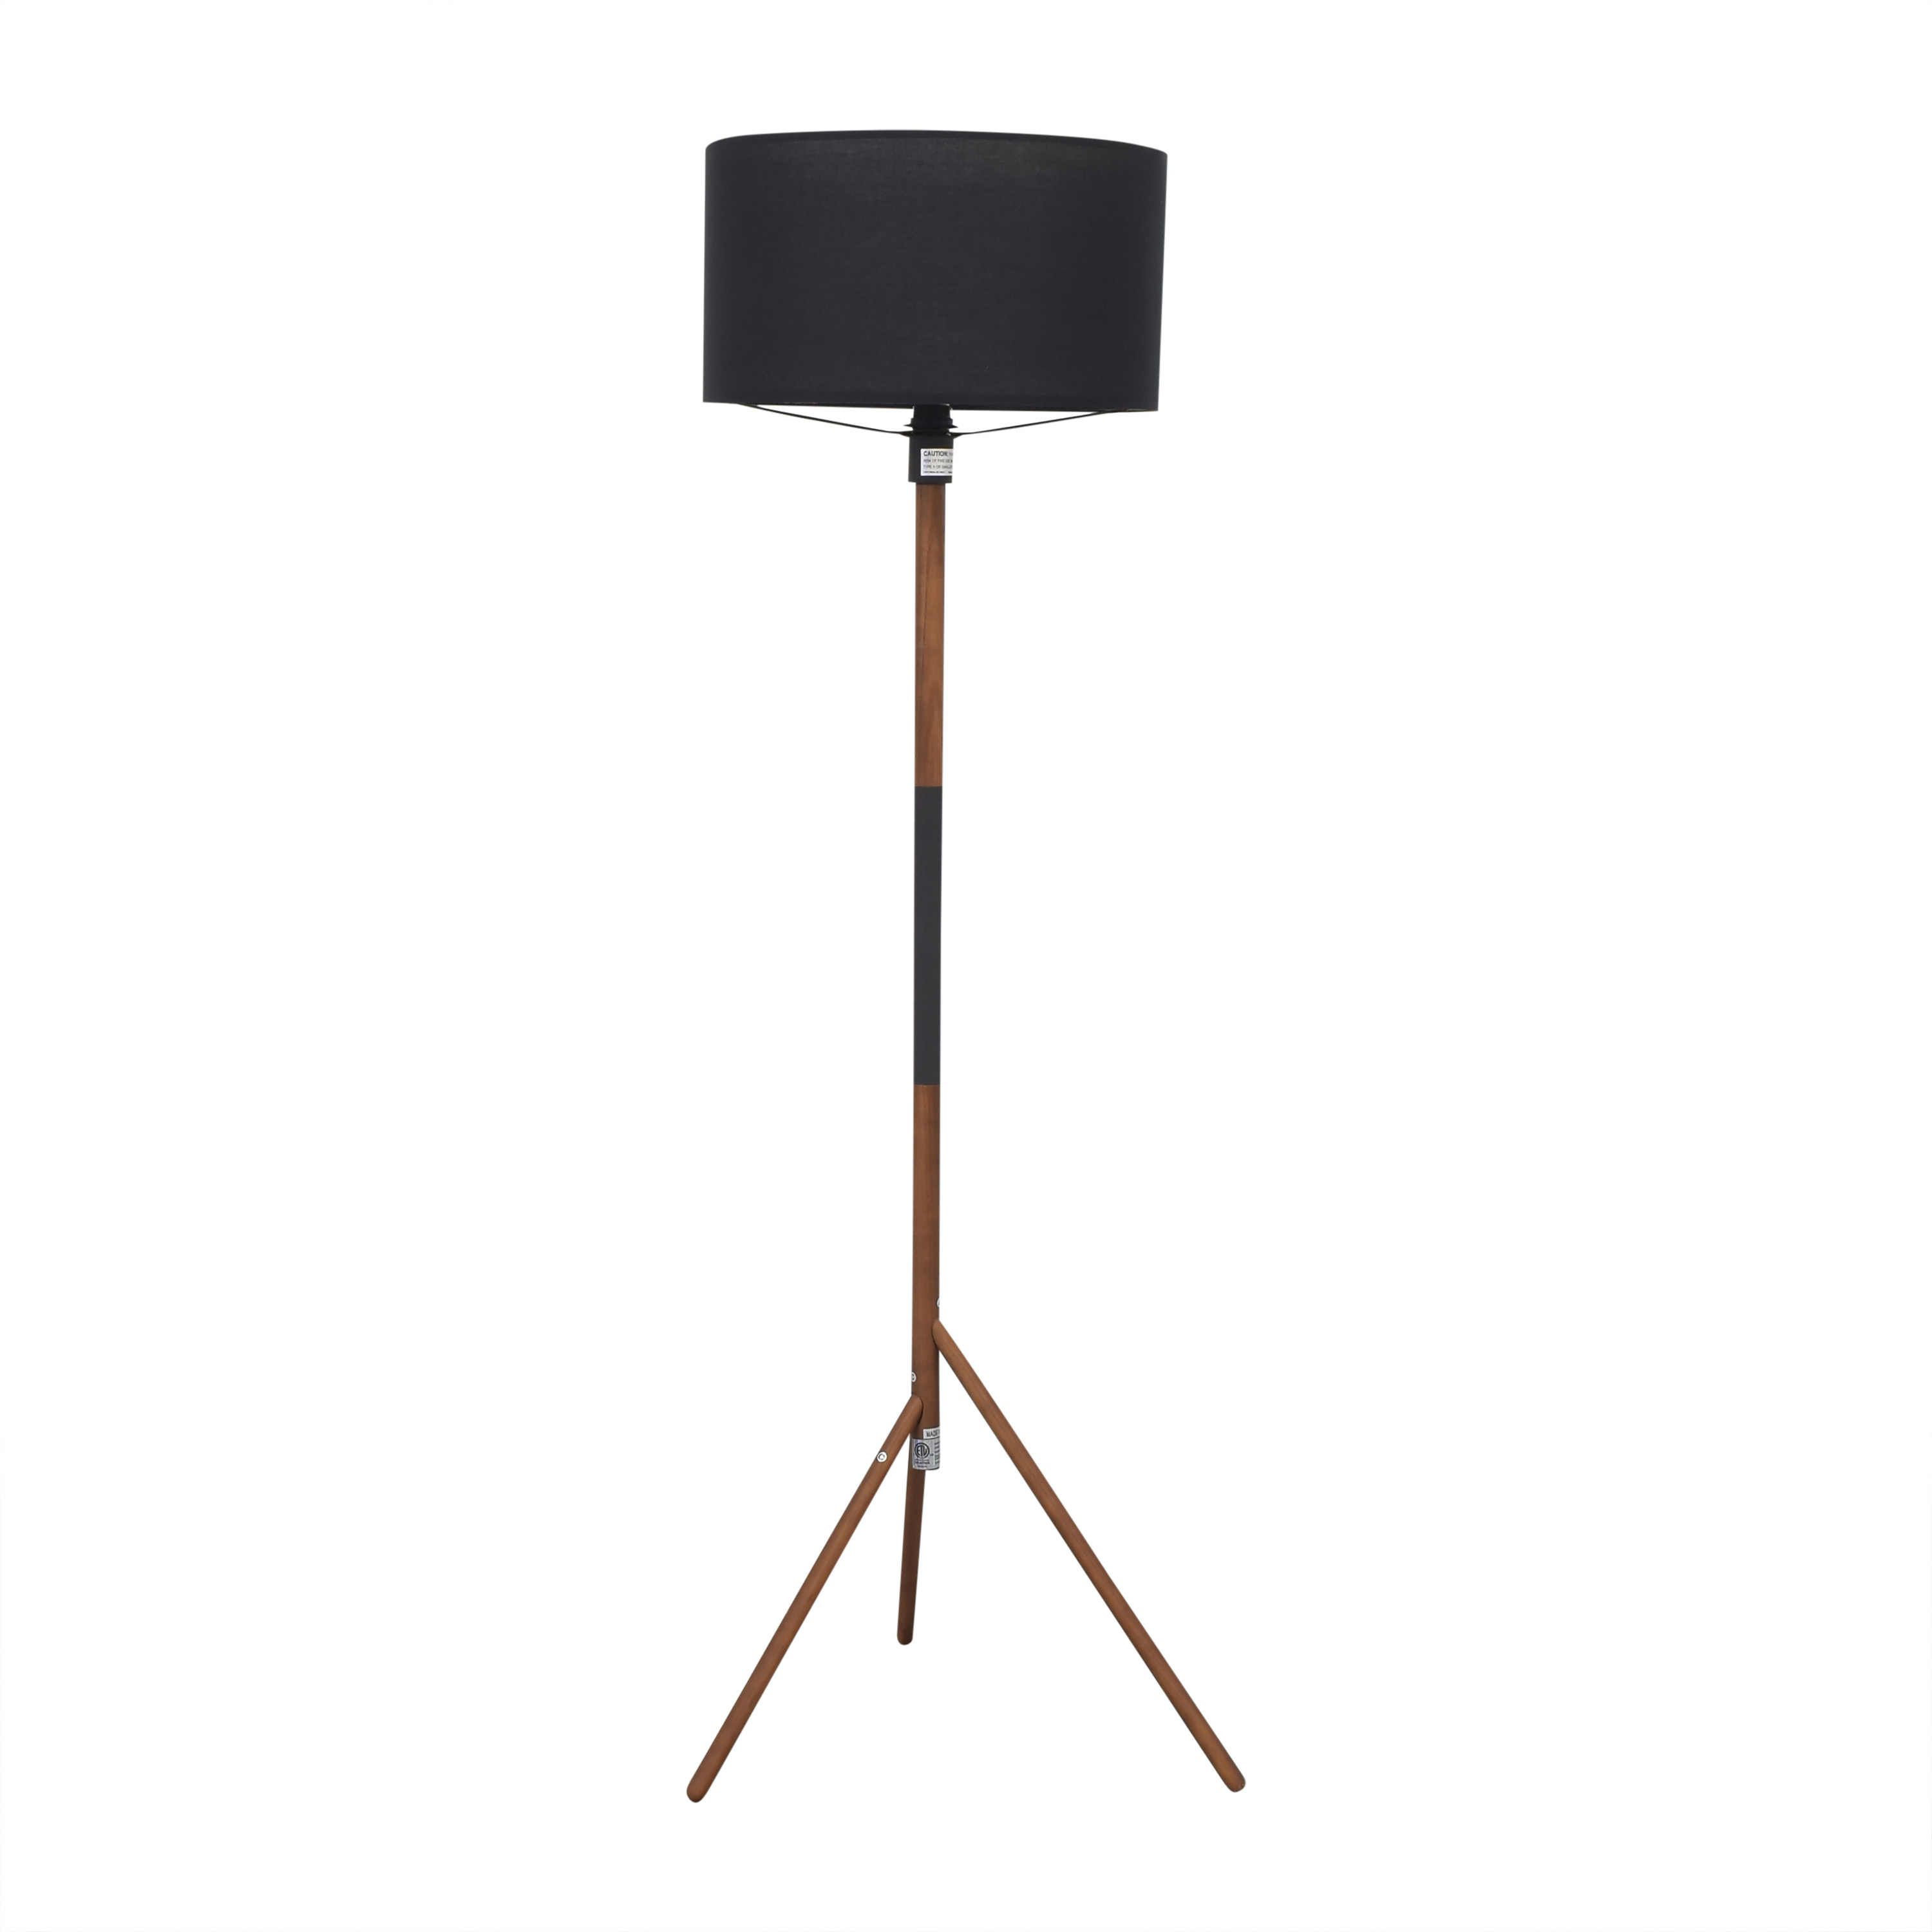 Article Article Stilt Tripod Floor Lamp second hand